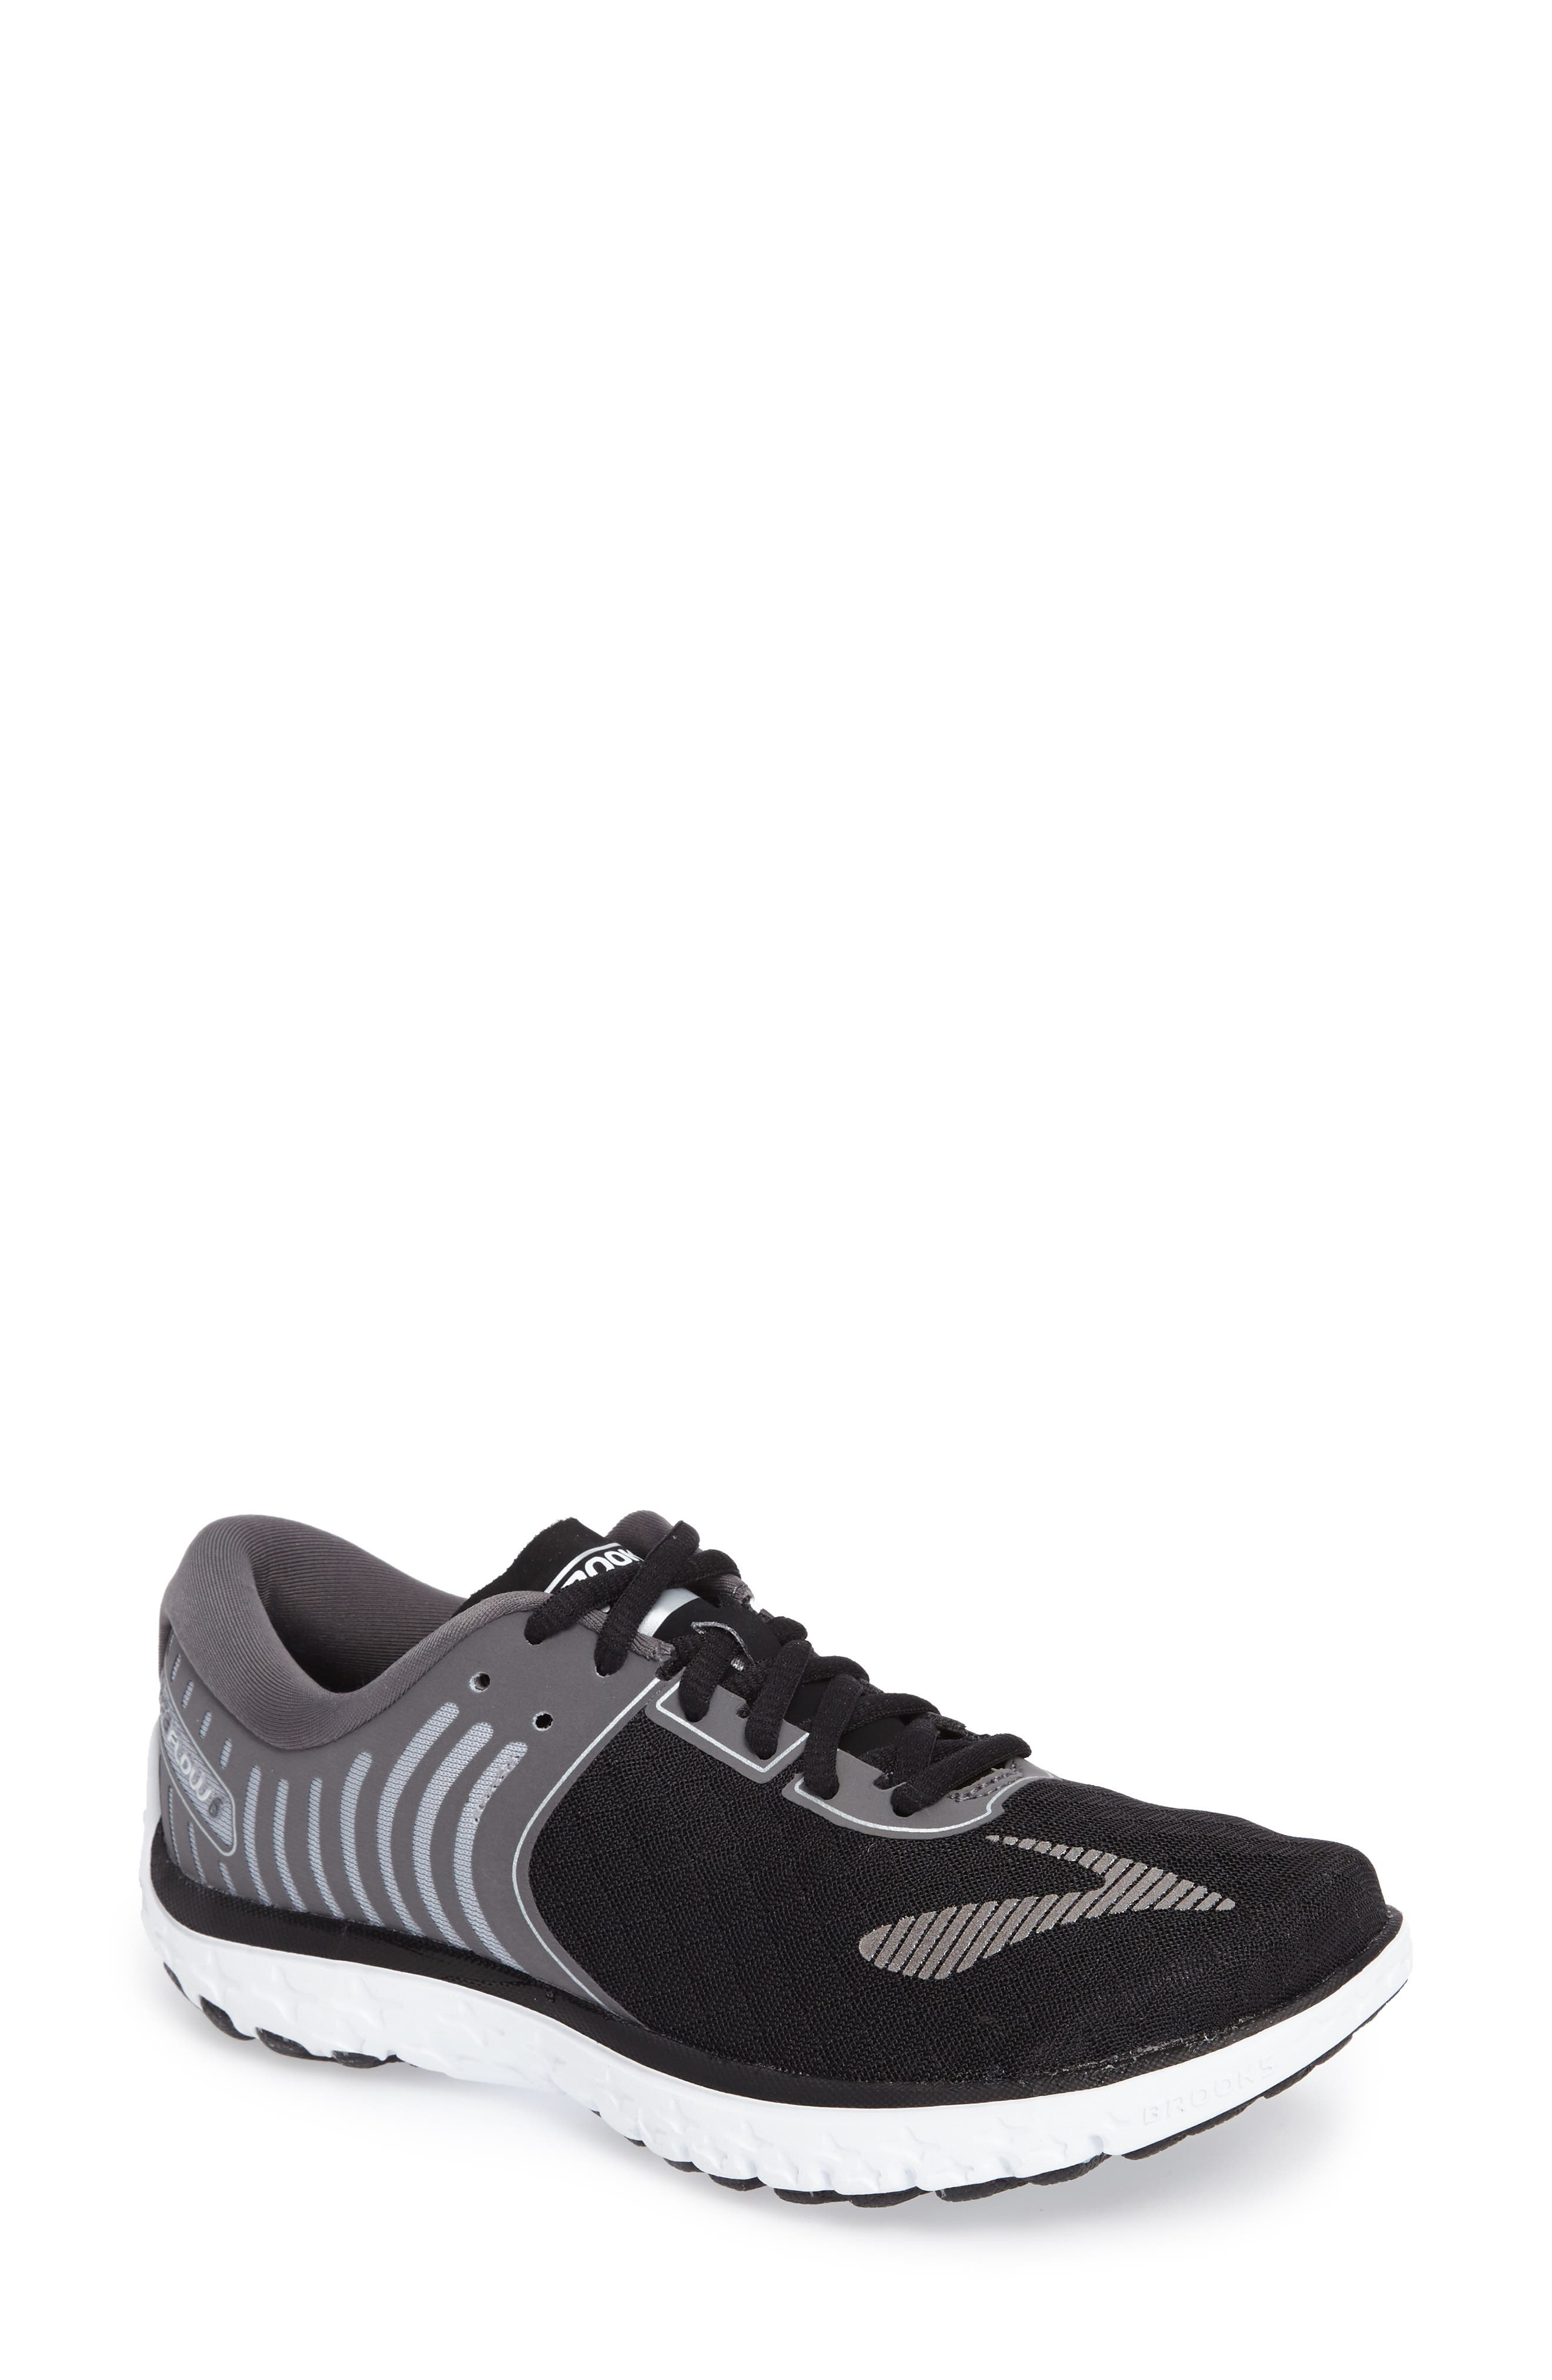 PureFlow 6 Running Shoe,                         Main,                         color, Black/ Anthracite/ Silver